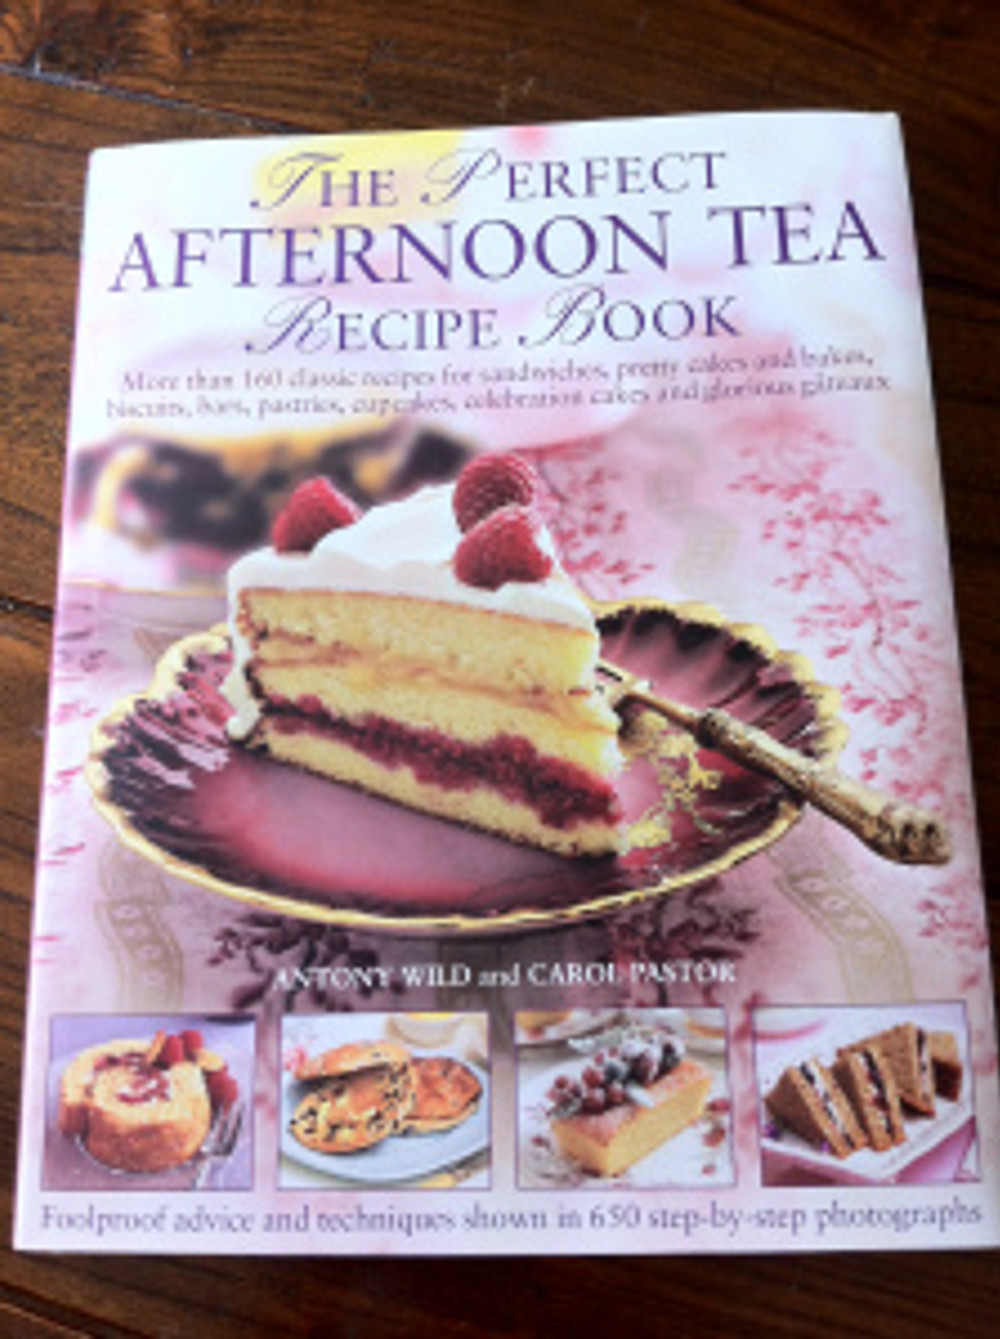 The Perfect Afternoon Tea Recipe Book by Antony Wild and Carol Pastor